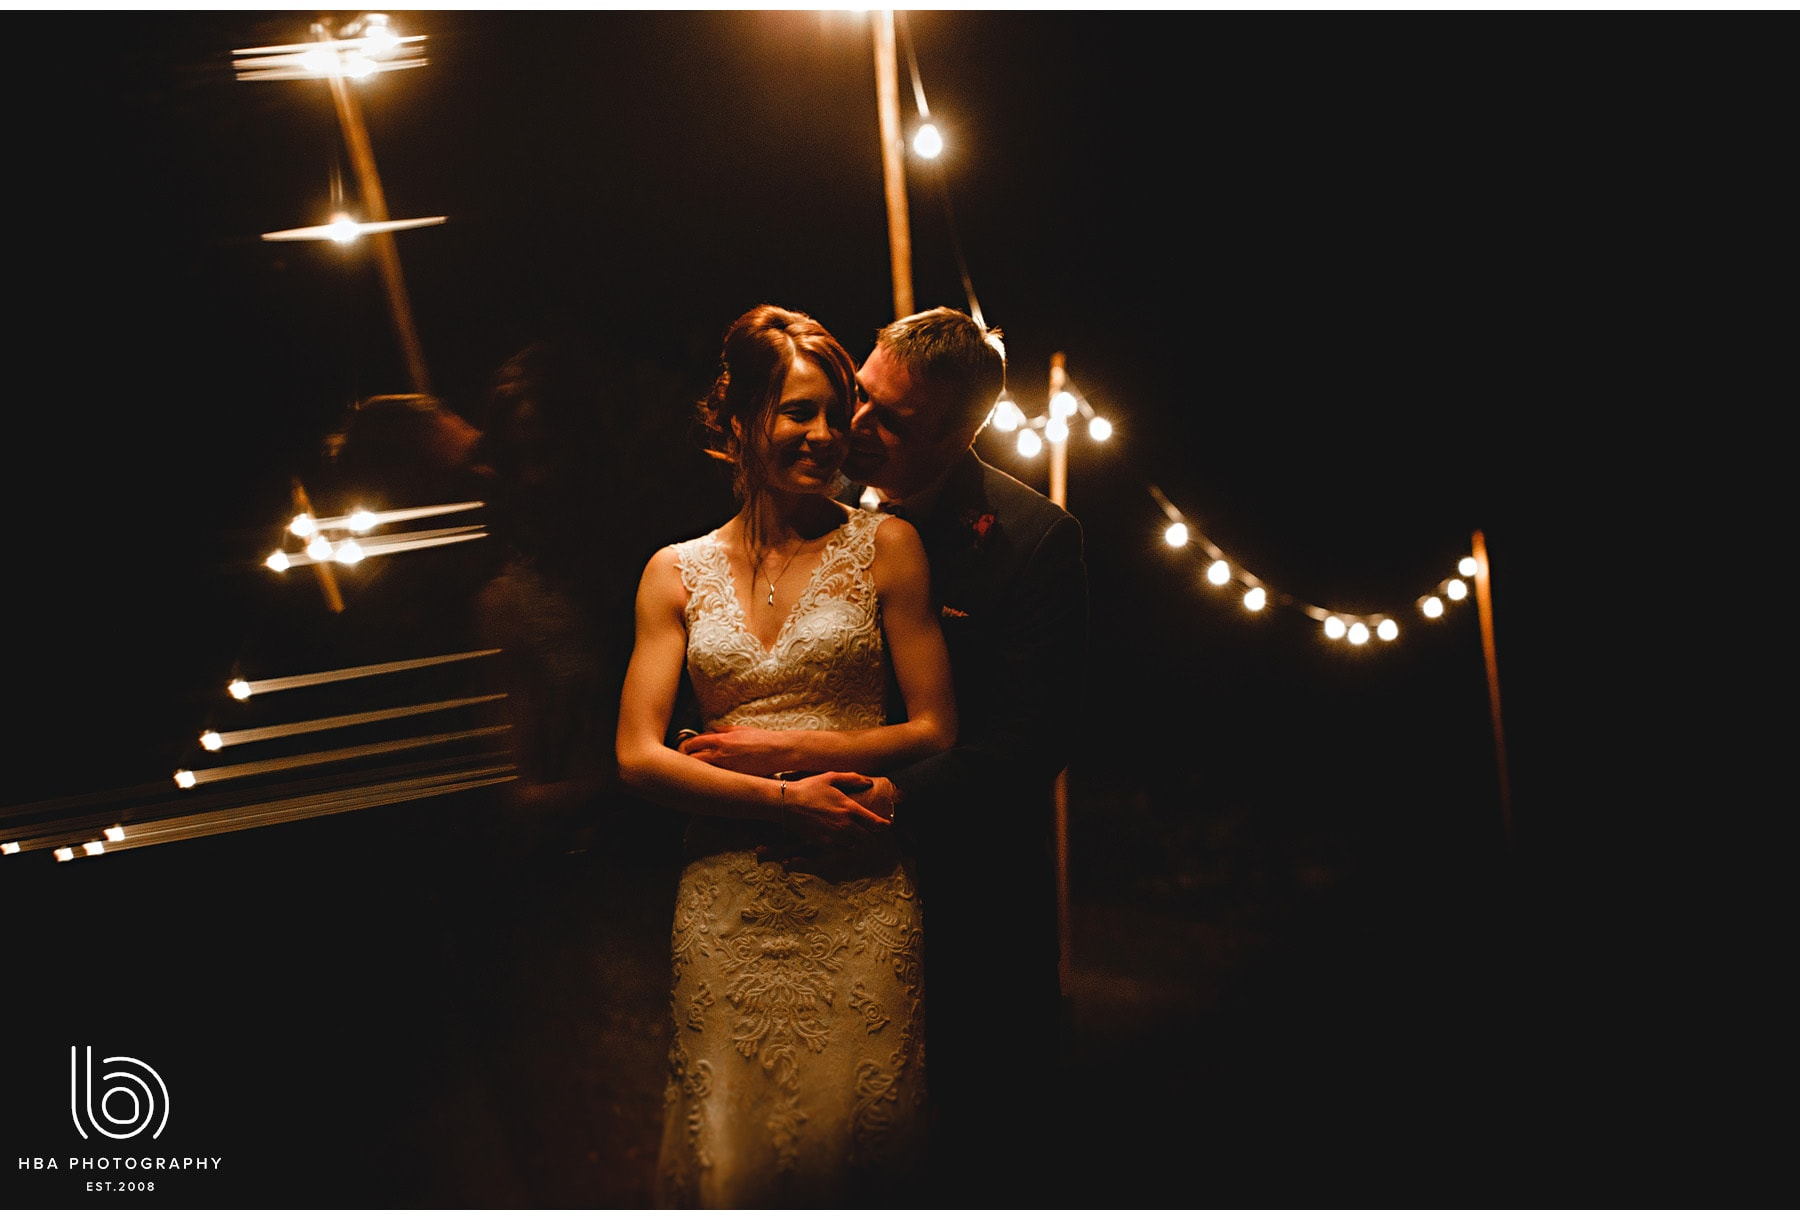 The bride and groom in the festoon lighting